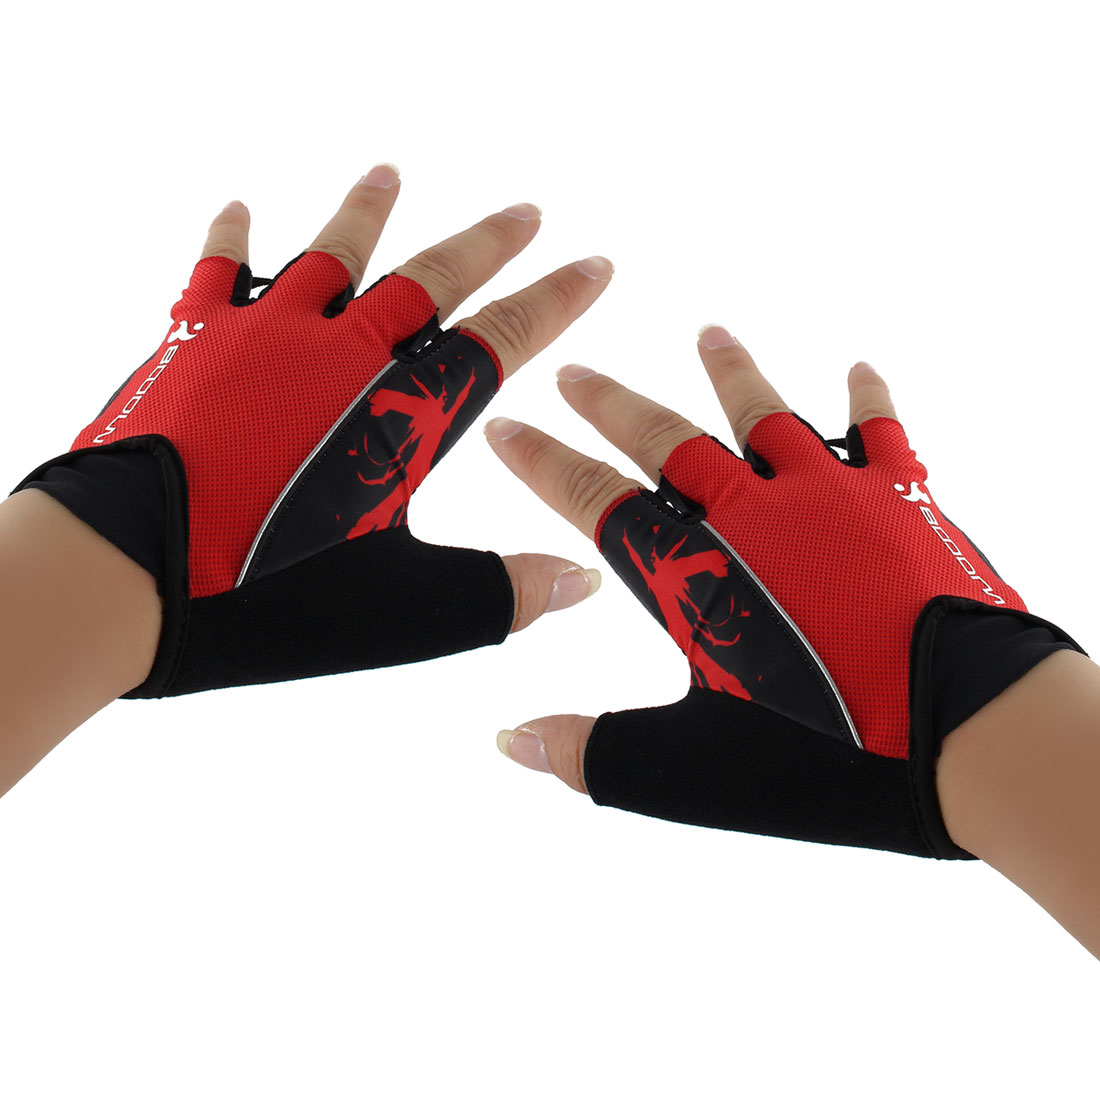 Polyester Exercise Sports Weightlifting Training Workout Protector Half Finger Fitness Gloves Red L Pair